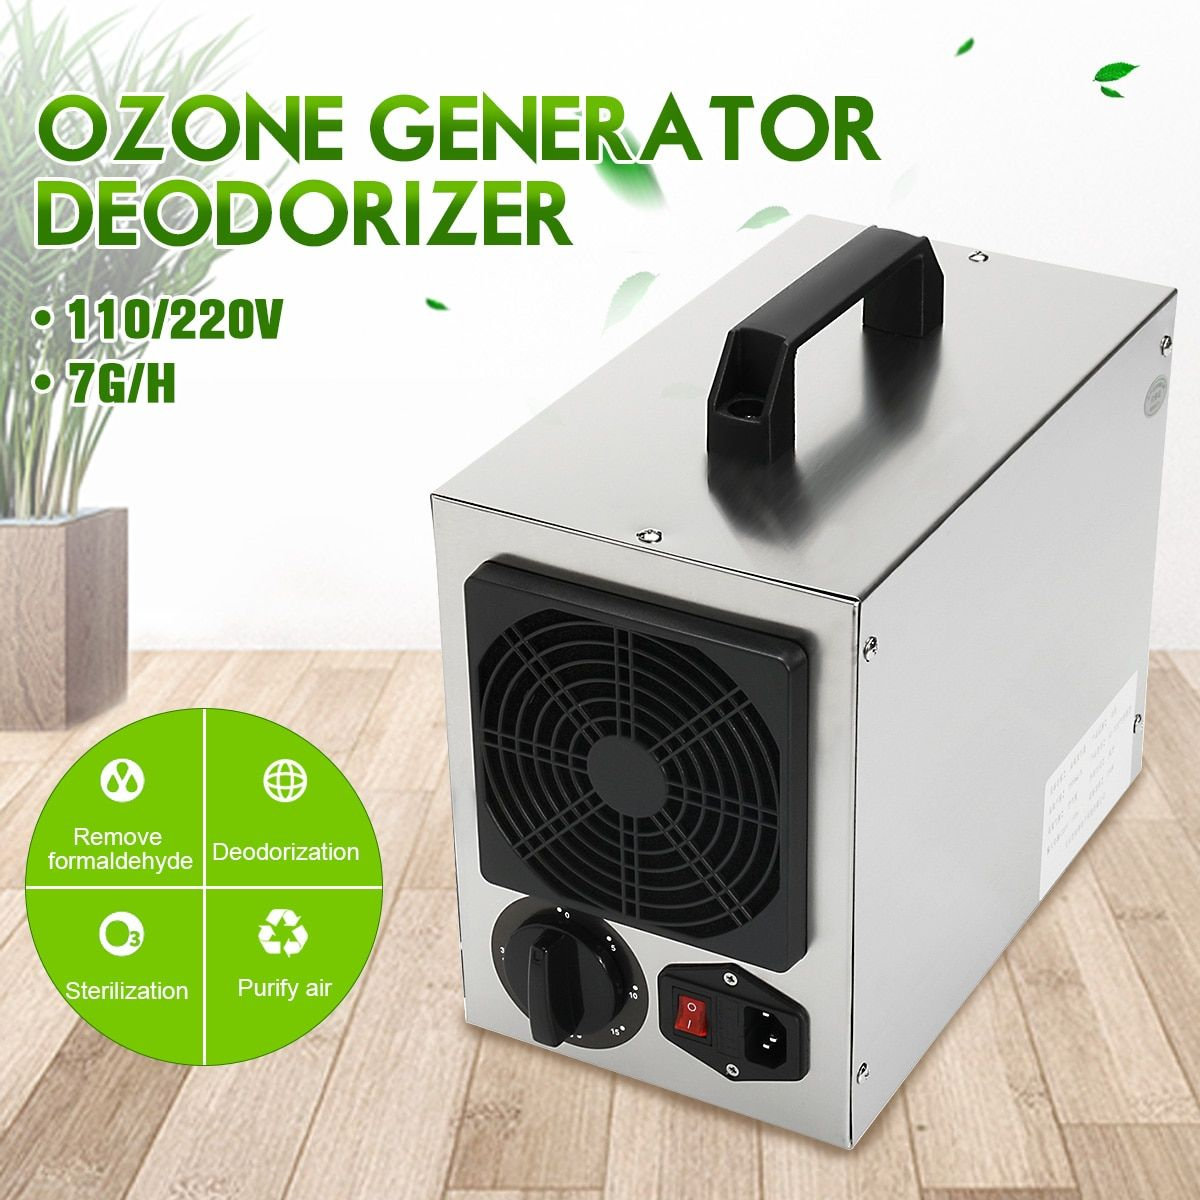 Home Commercial Ozone Generator 7g/h O3 Air Purifier Deodorizer 220V/110 Air Cleaner For Hospital Factory Home AU Plug